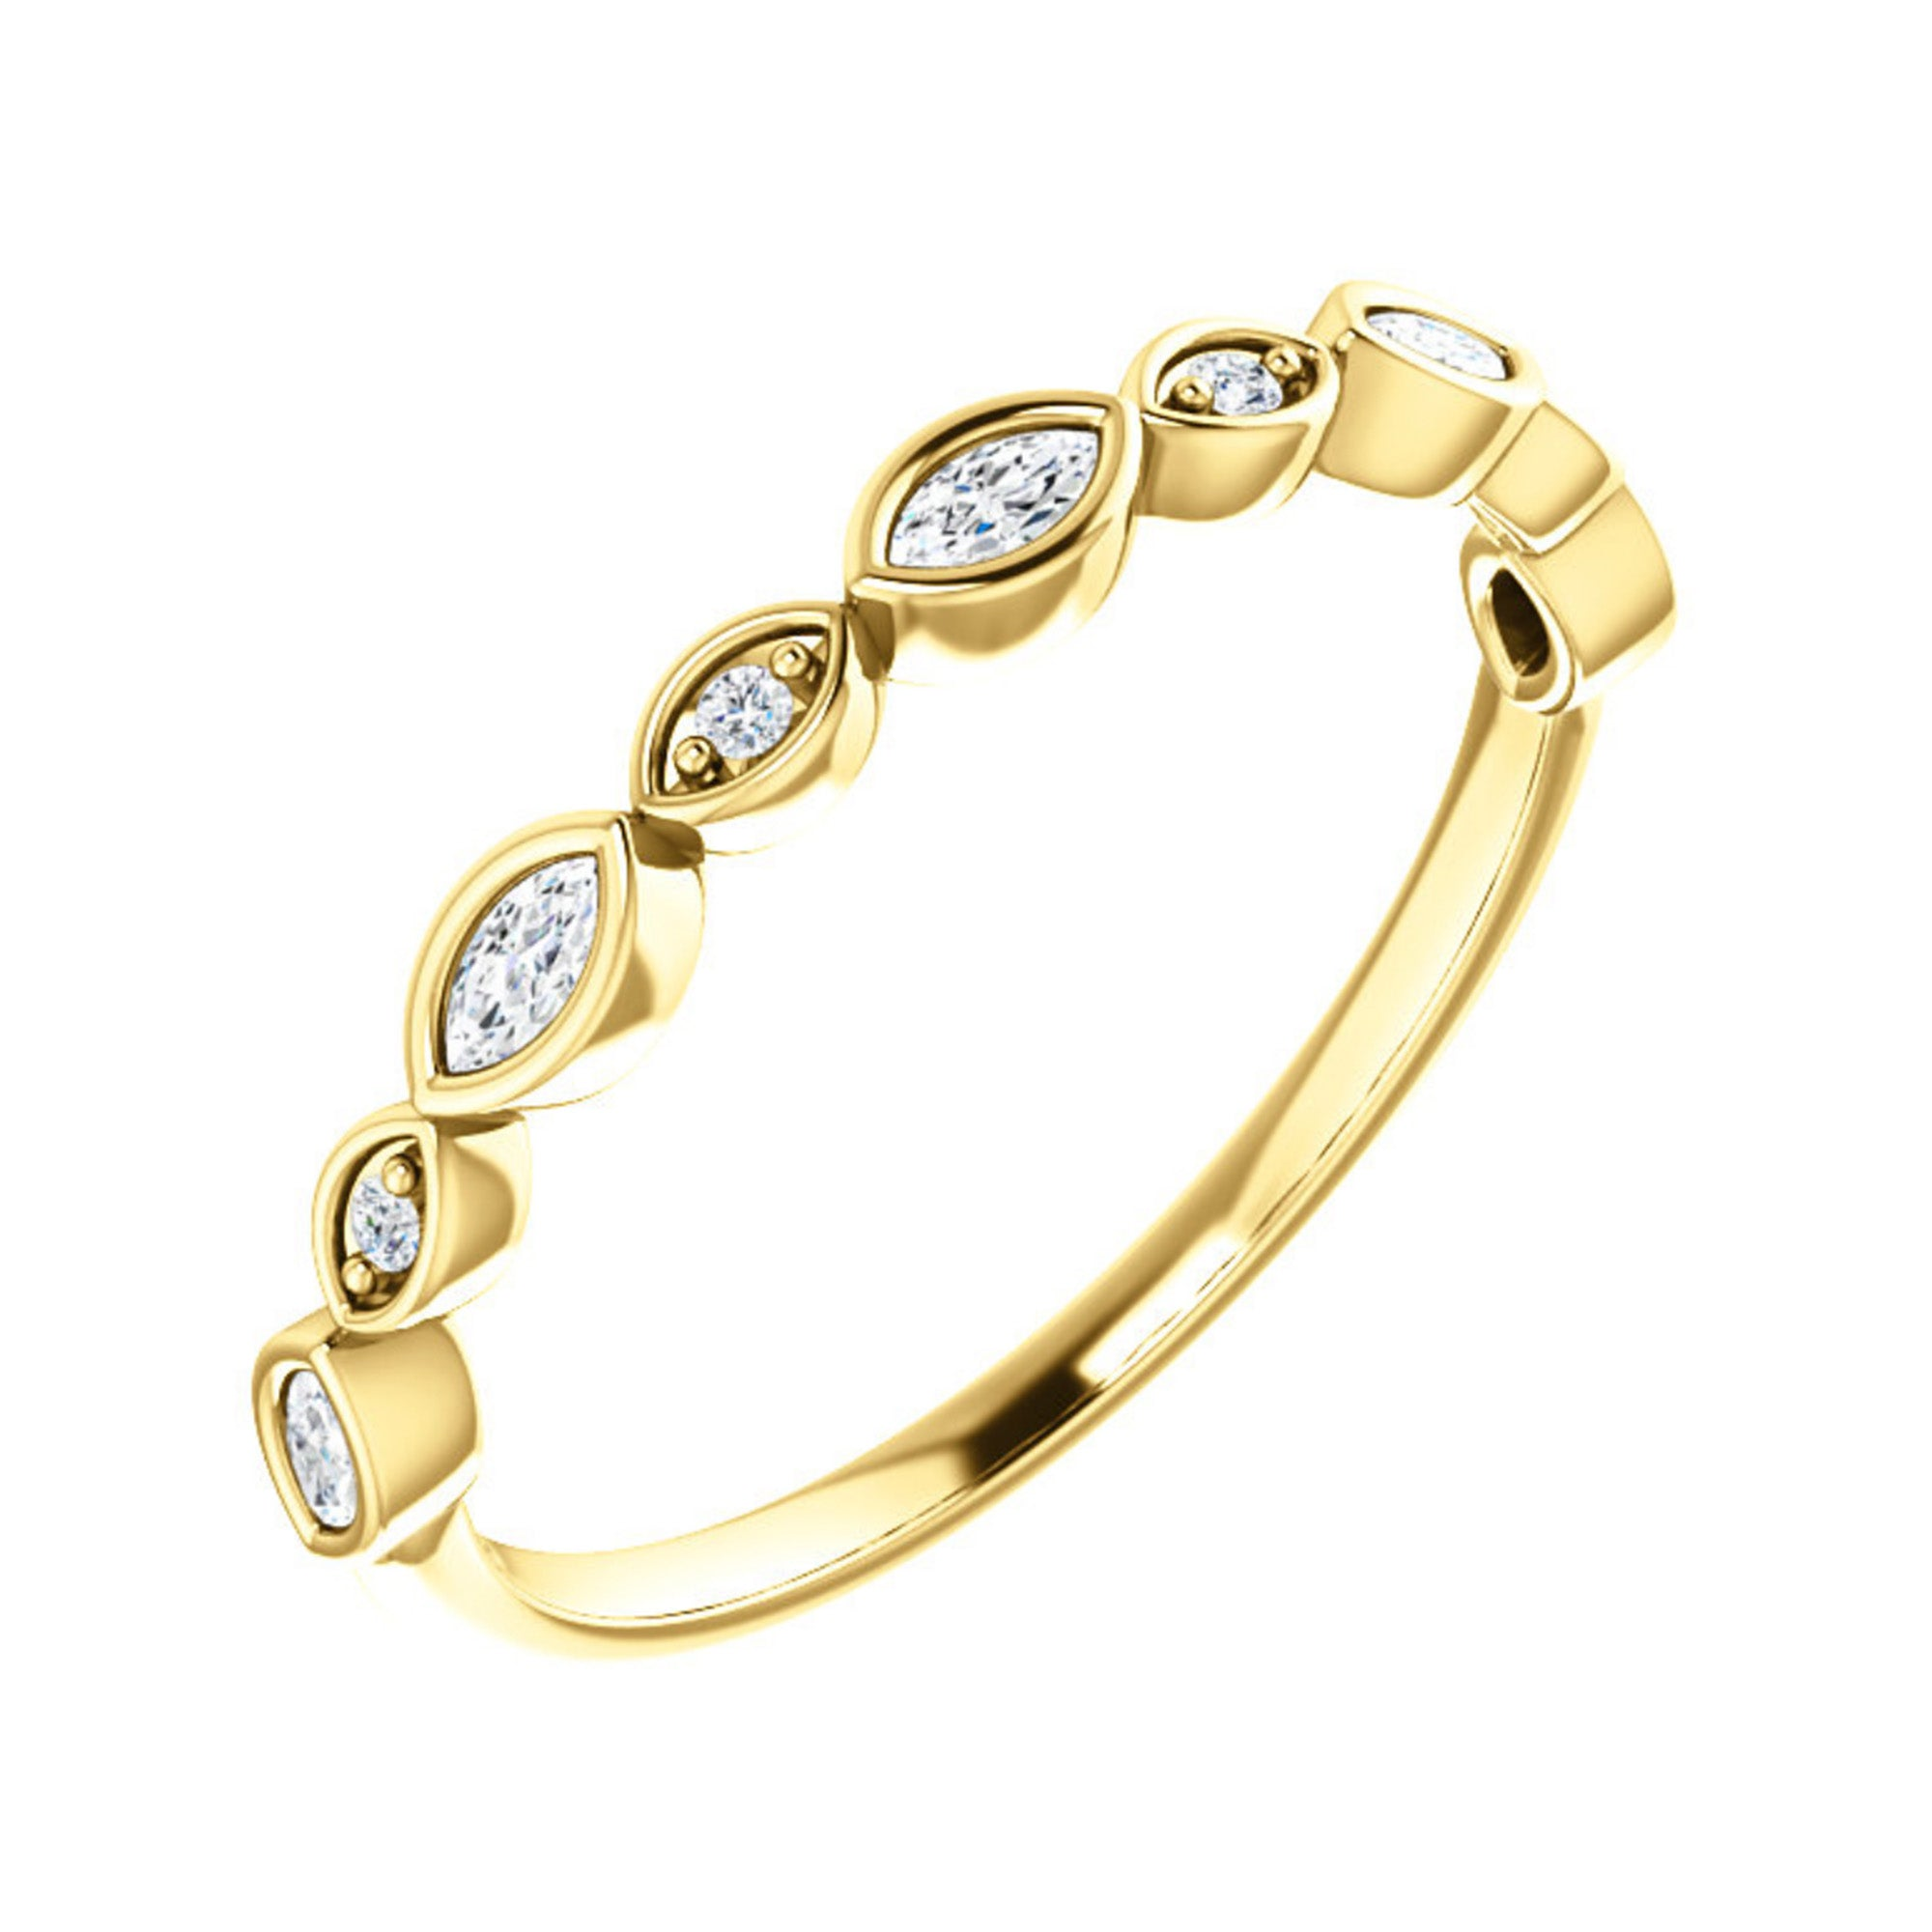 Alternating Marquise and Round Diamond Stack Band in White, Yellow or Rose Gold - Talisman Collection Fine Jewelers